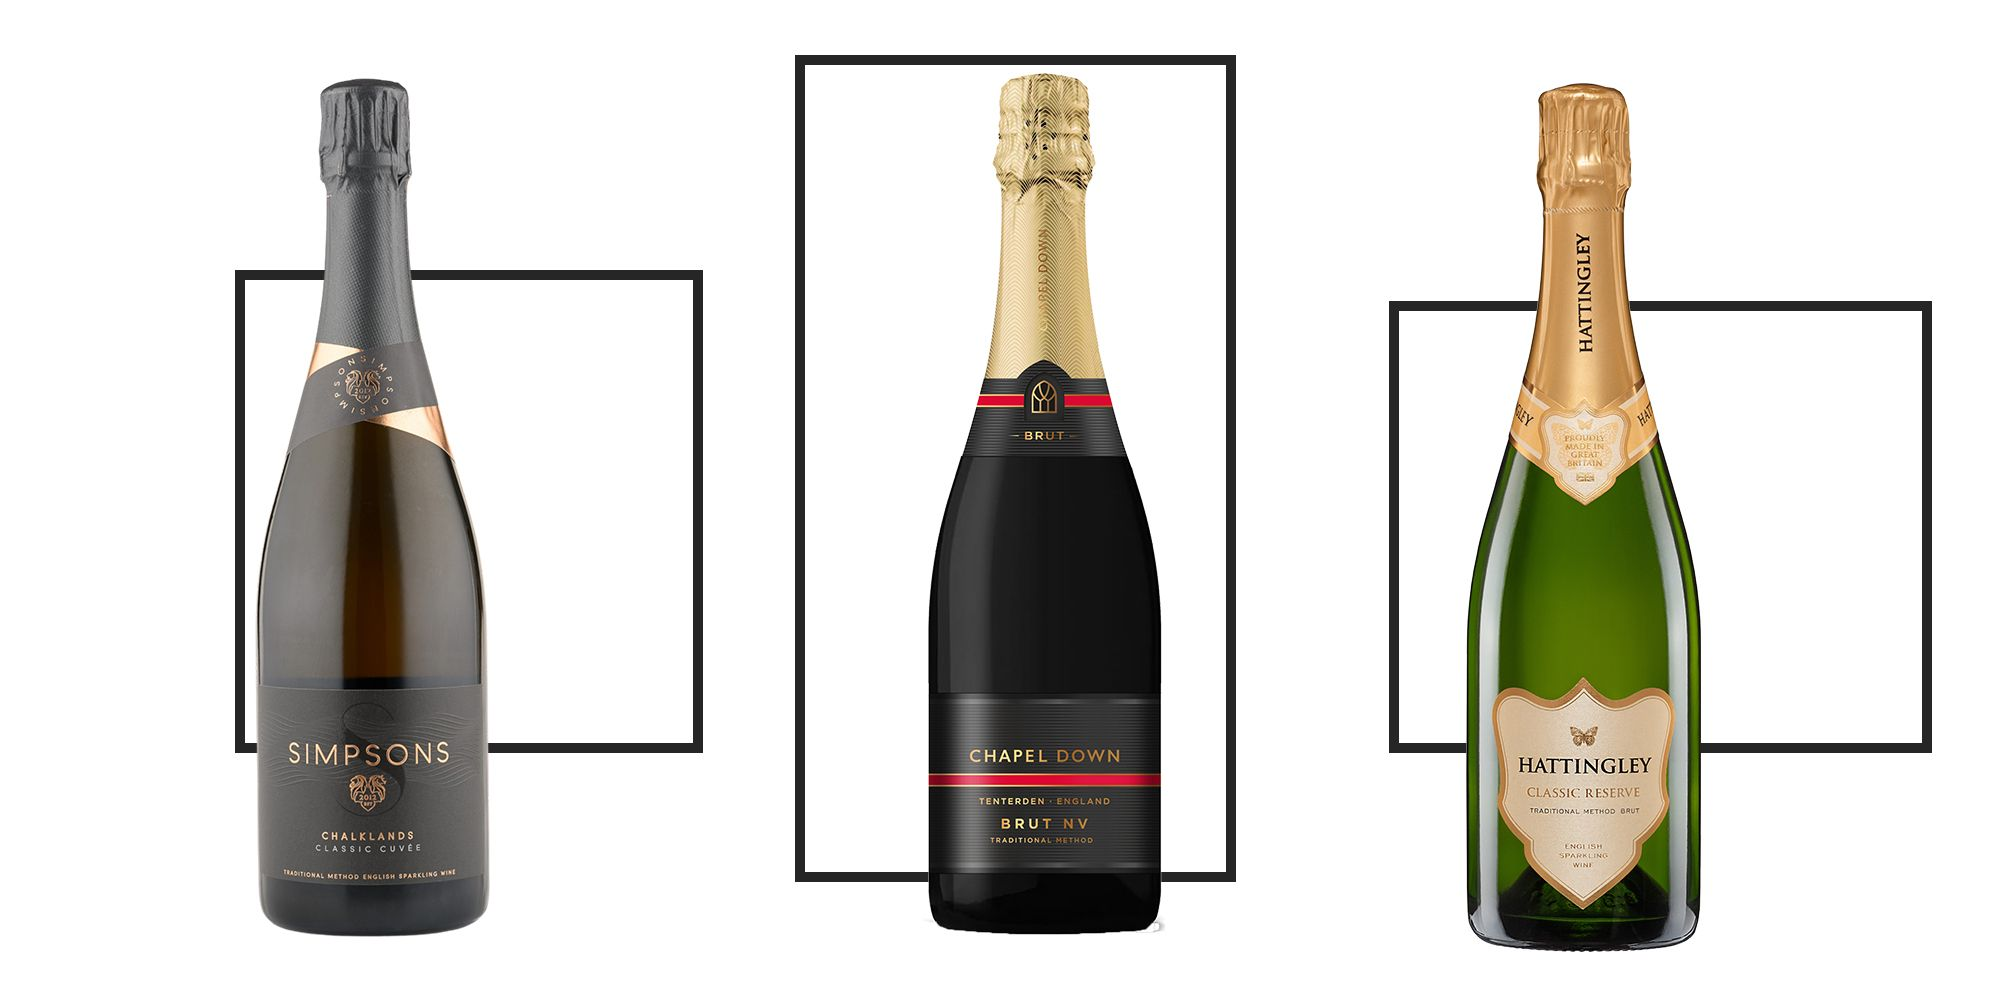 10 of the best luxury English sparkling wines to try at home